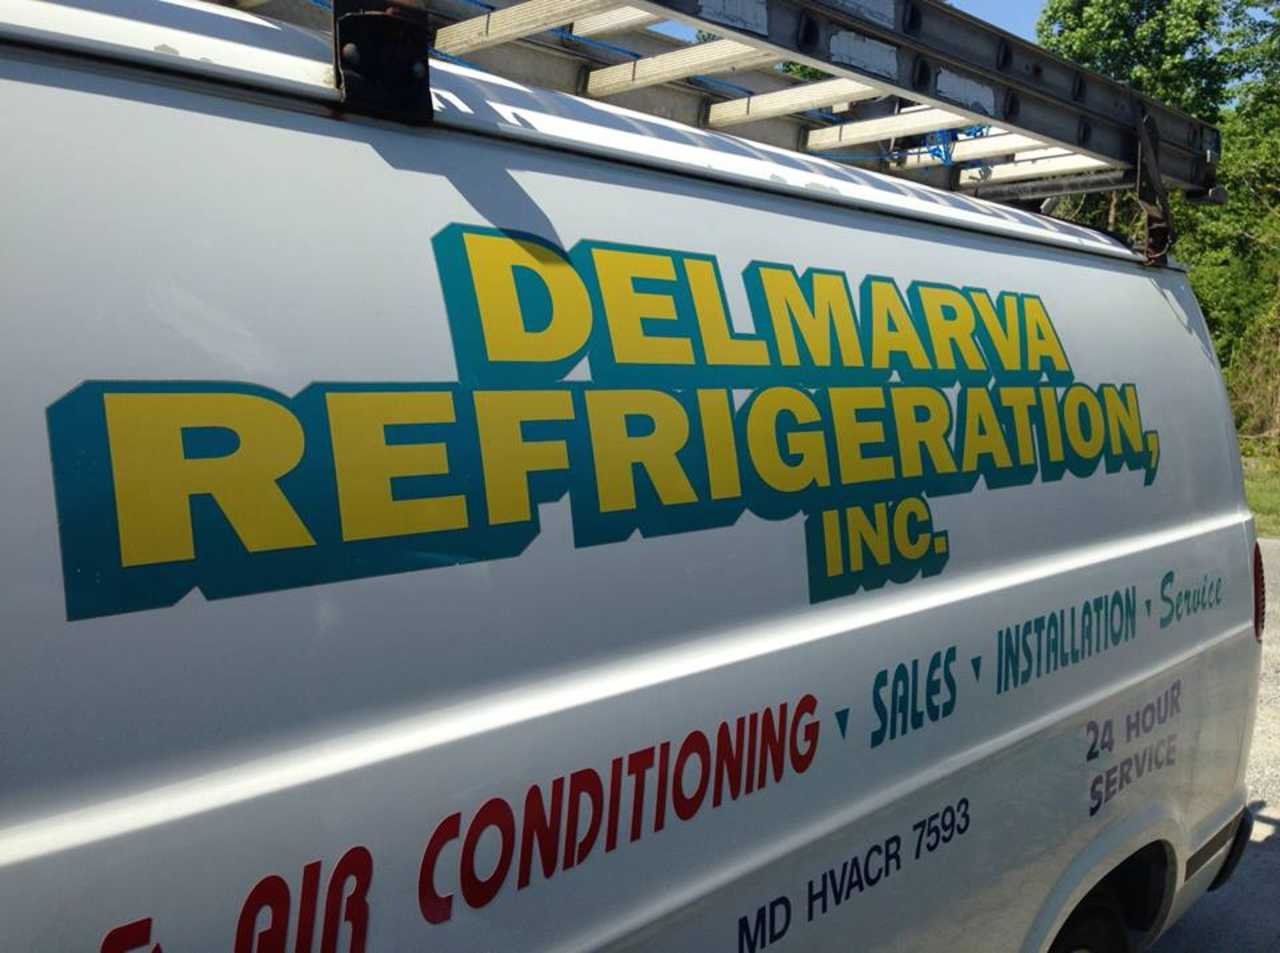 Delmarva Refrigeration - Services - Residential Contractors in Delmar DE